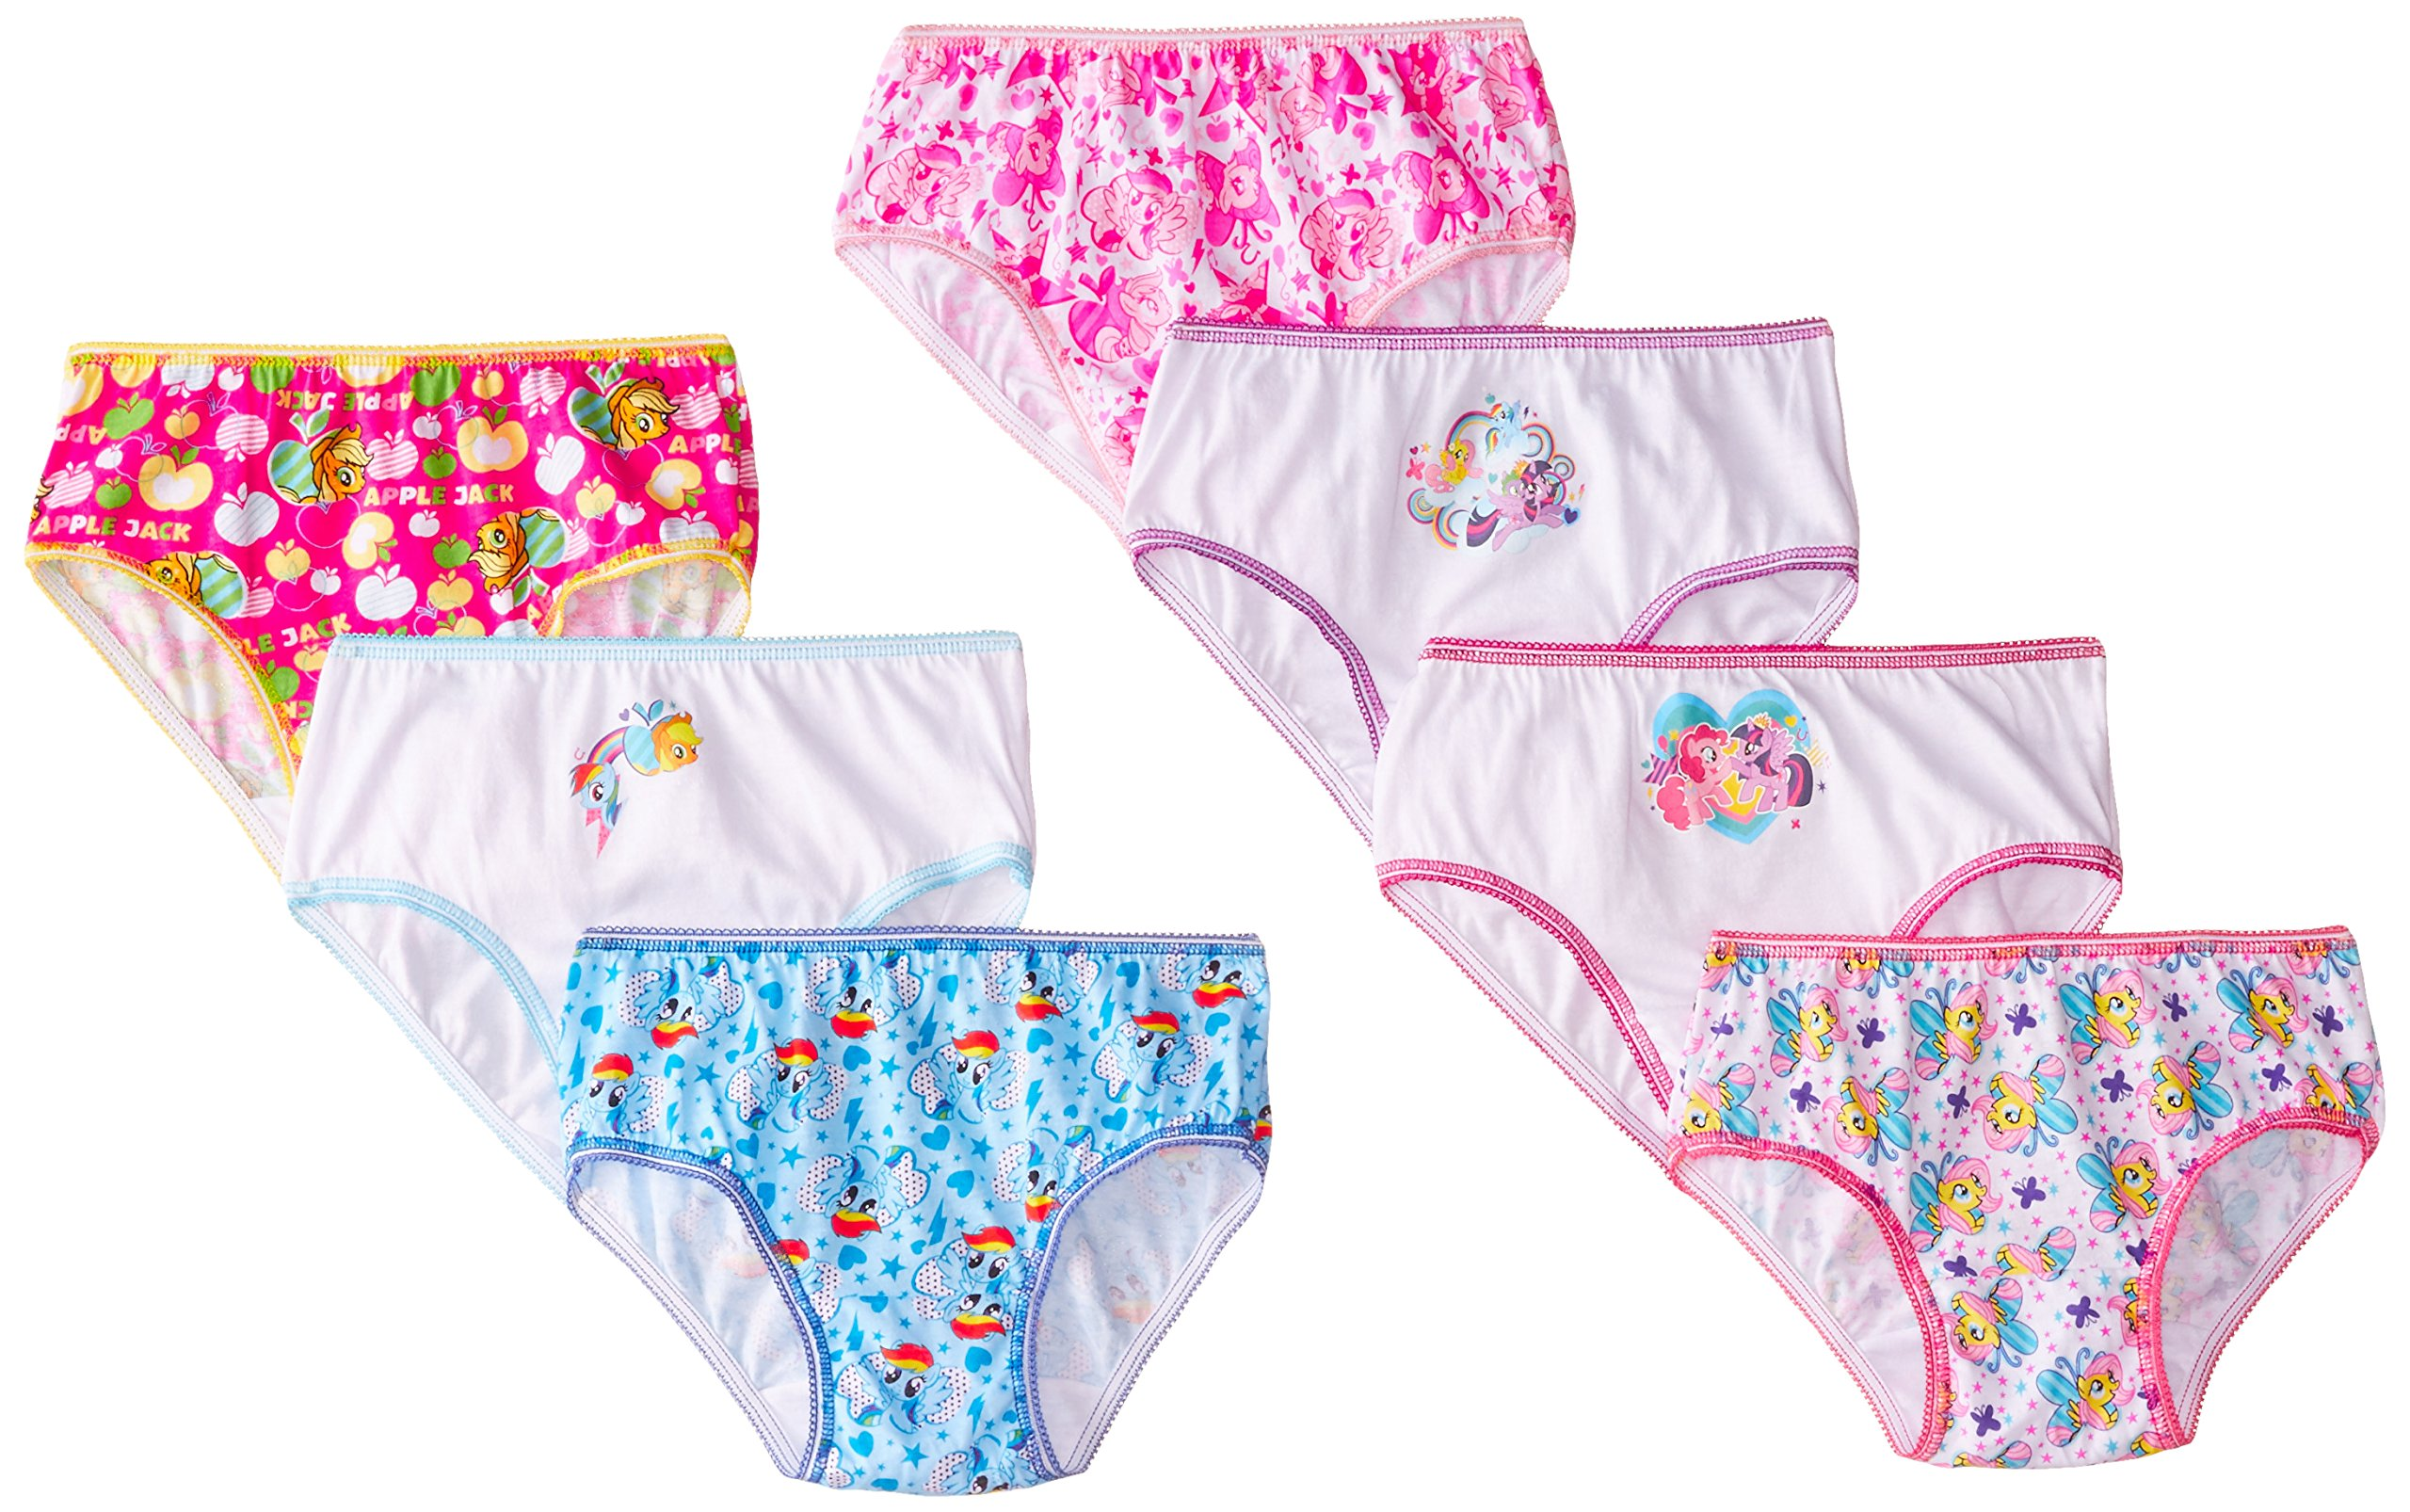 Handcraft Little Girls' My Little Pony Panty (Pack of 7), Multi, 6